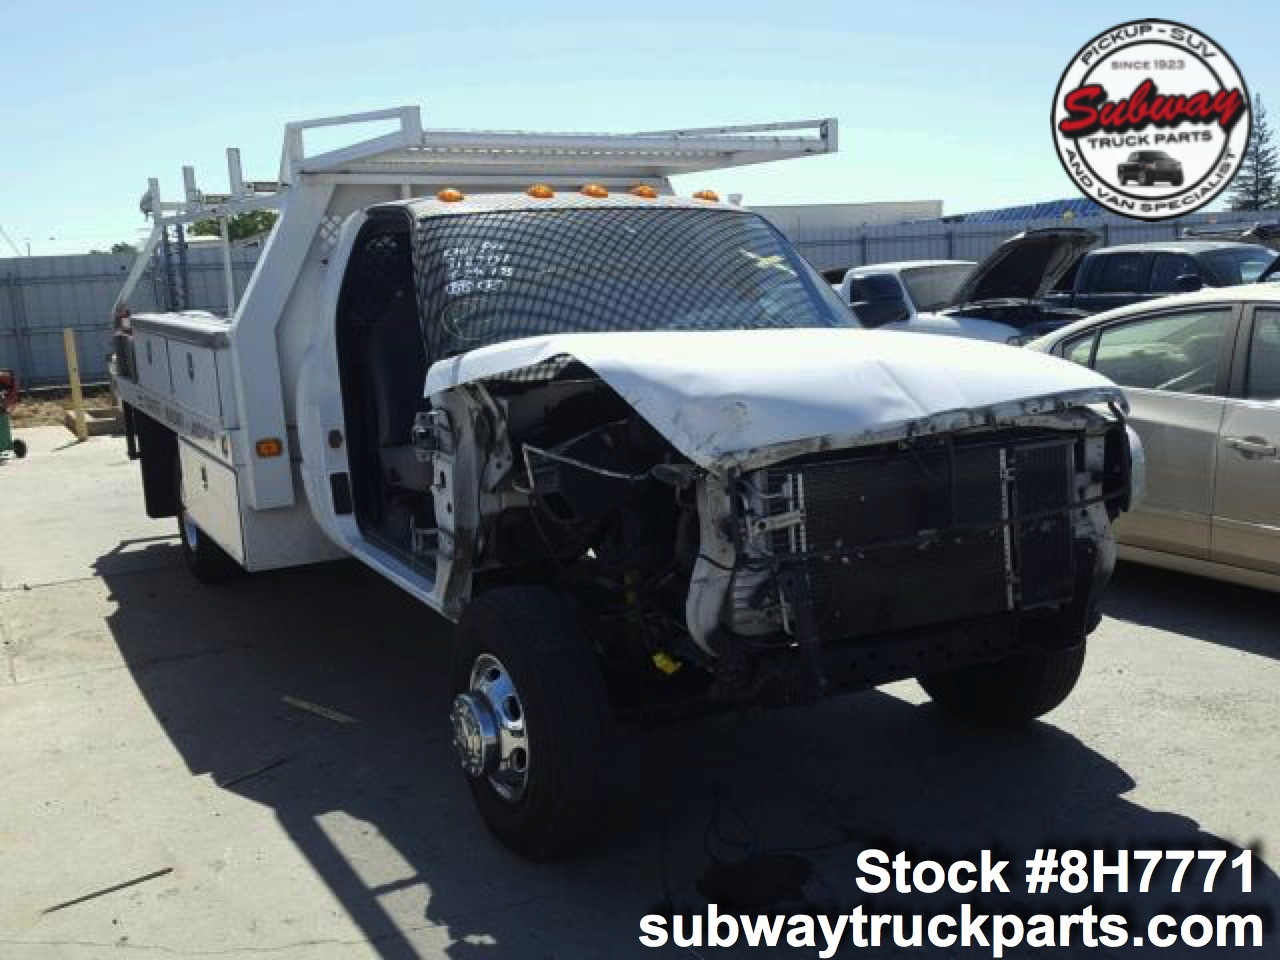 used parts 2002 dodge ram 3500 5 9l diesel subway truck parts subway truck parts